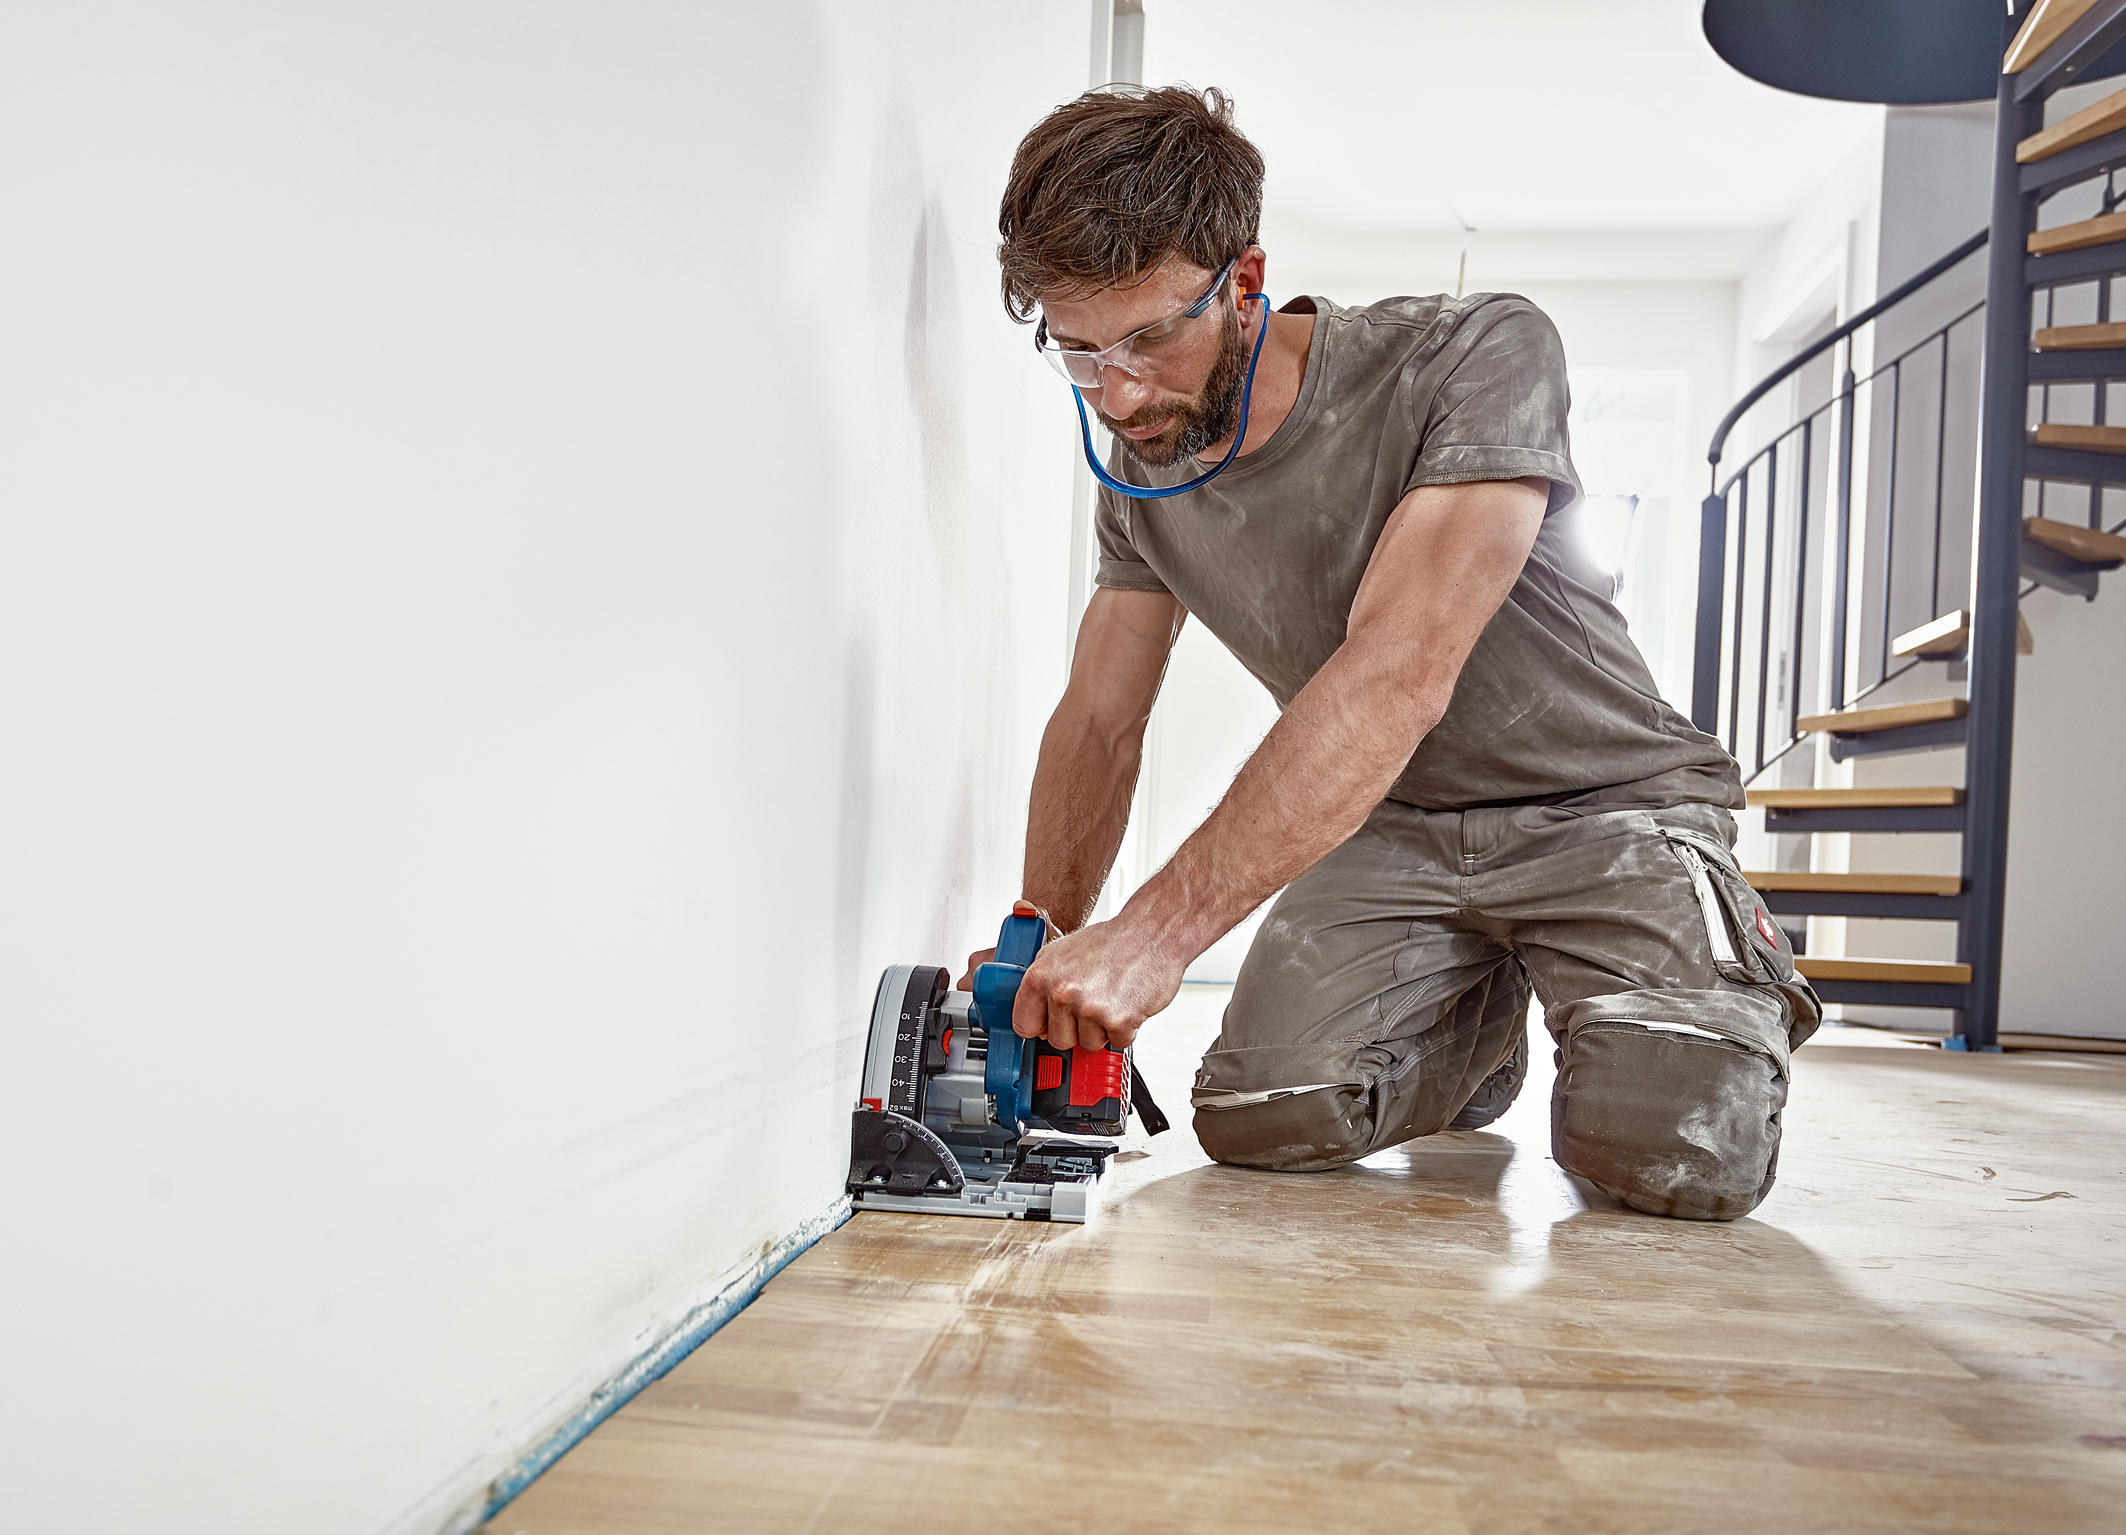 Best in its class with a wall clearance of 10 millimeters: Cordless GKT 18V-52 GC Professional plunge saw from Bosch for professionals